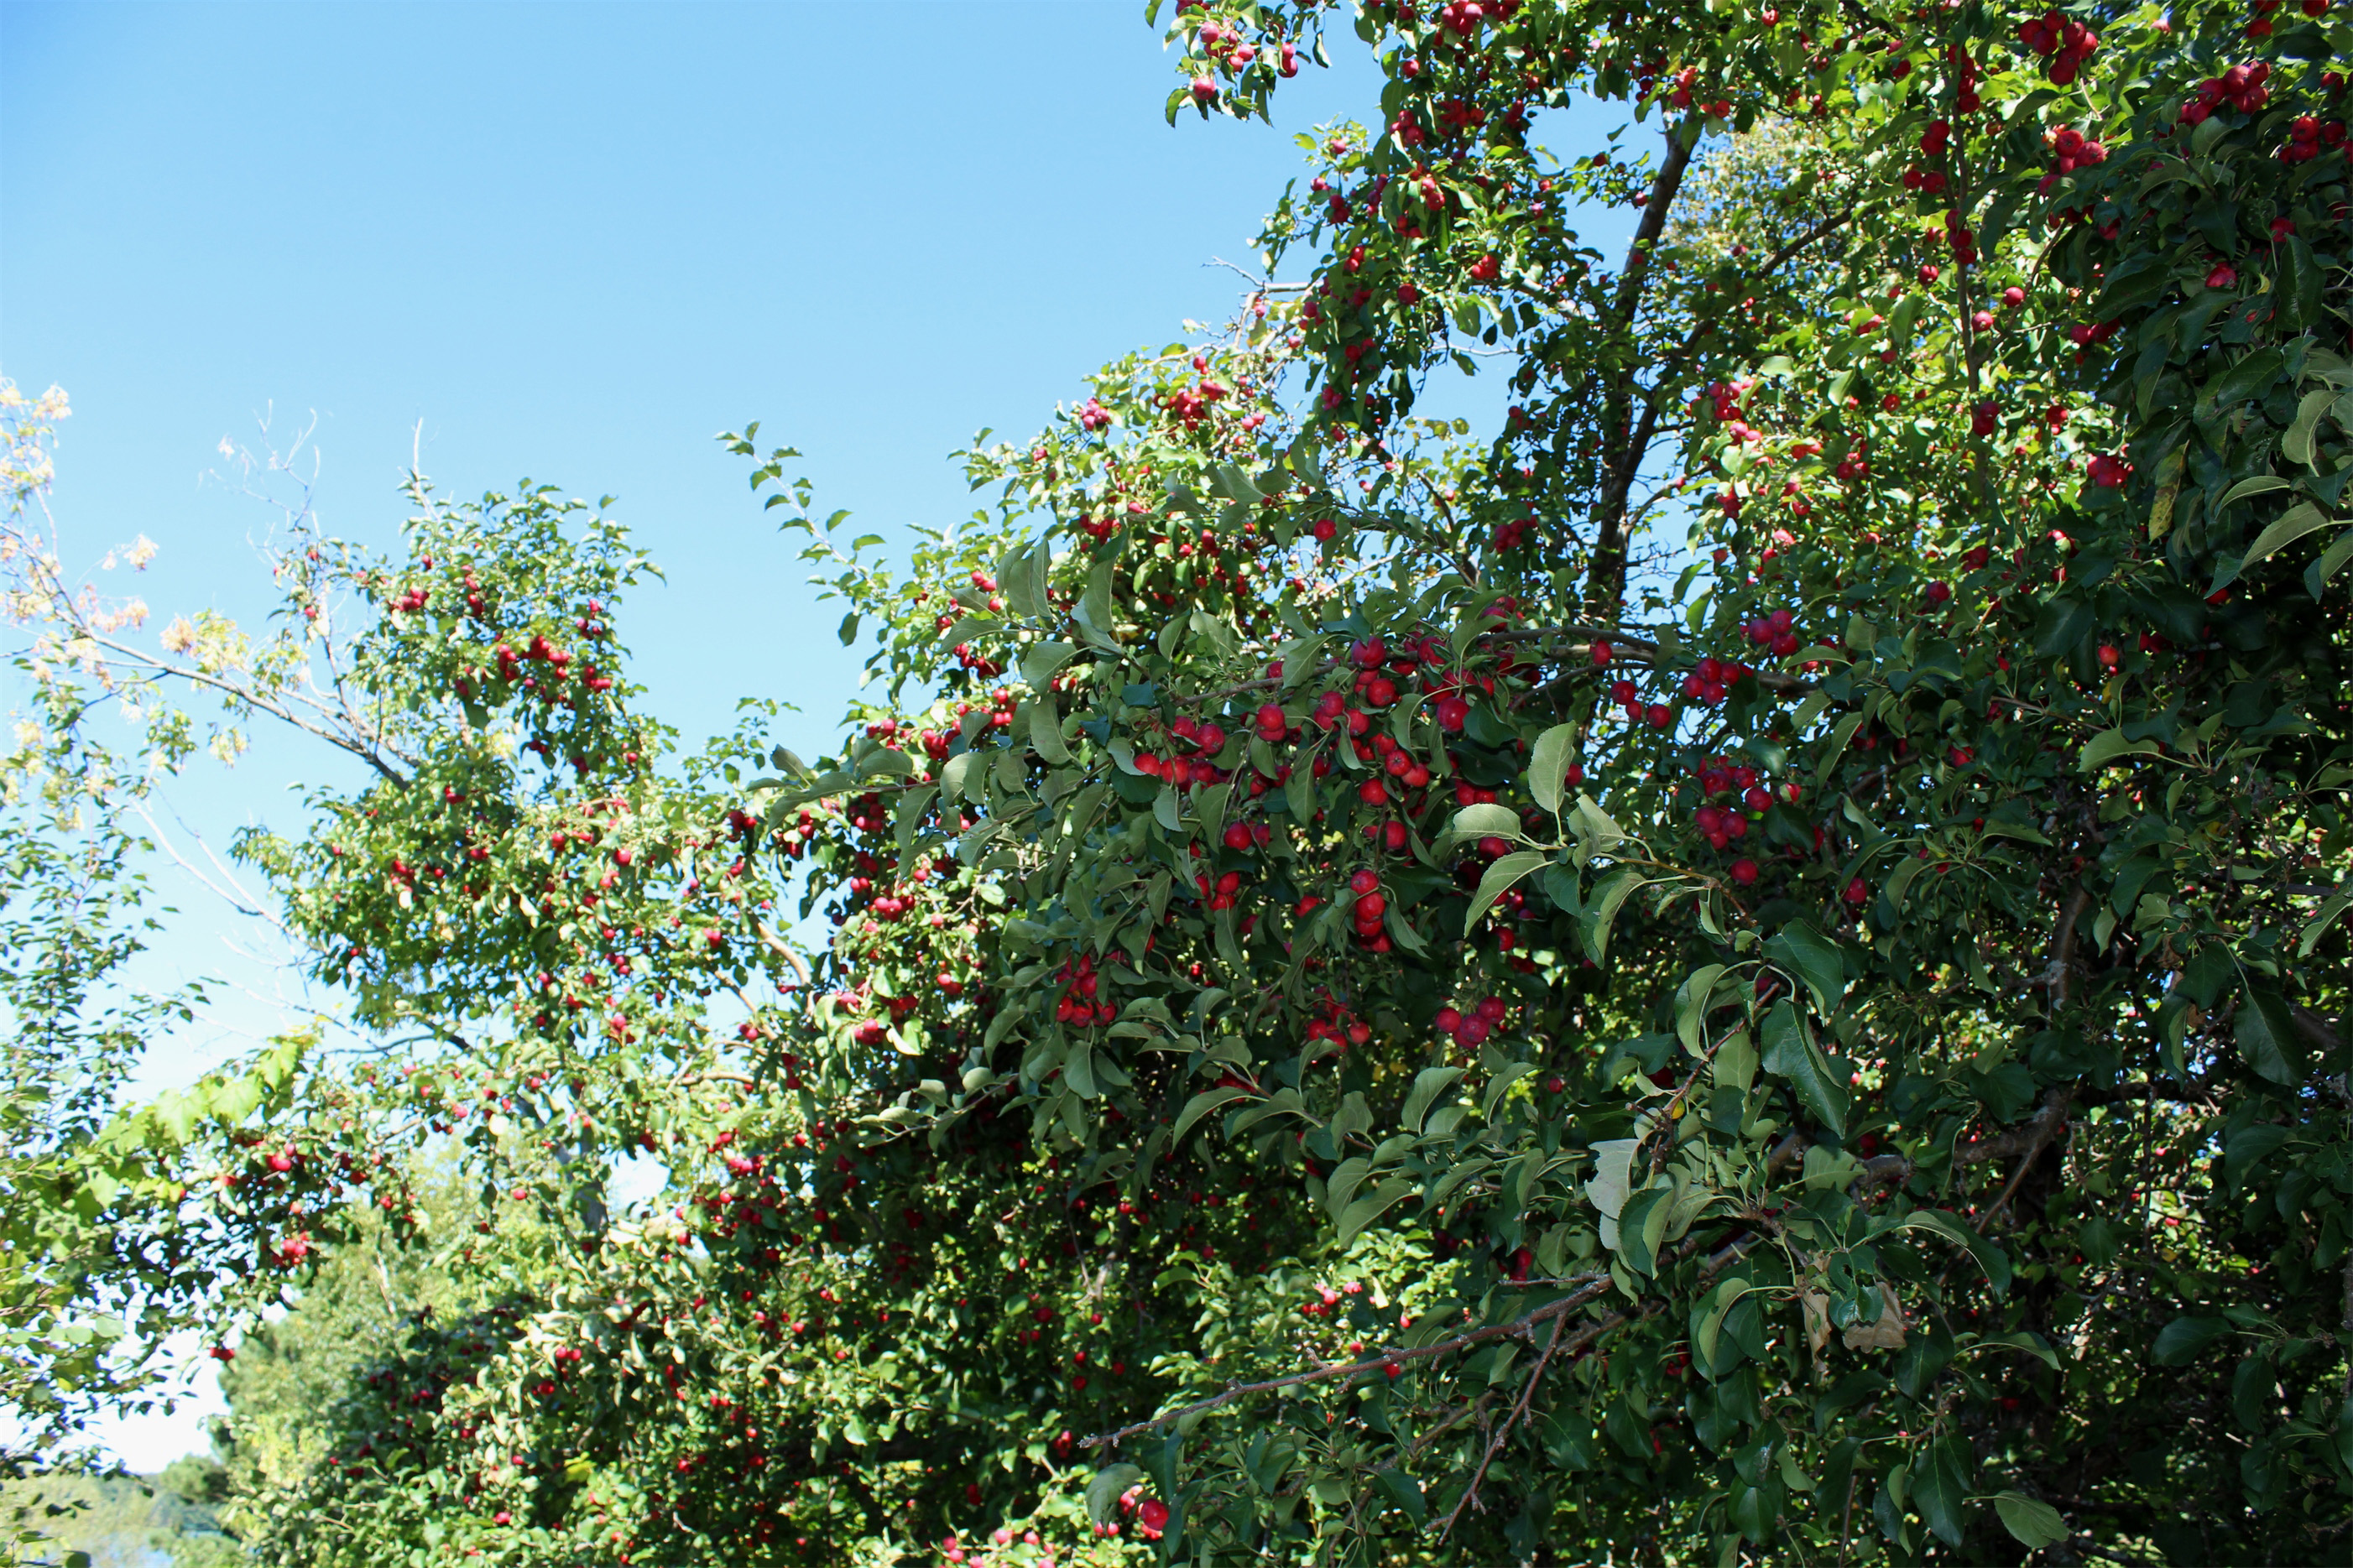 Bright red apples hang from this tree near the Bearskin Trail, Minocqua. Kim Johnson photo